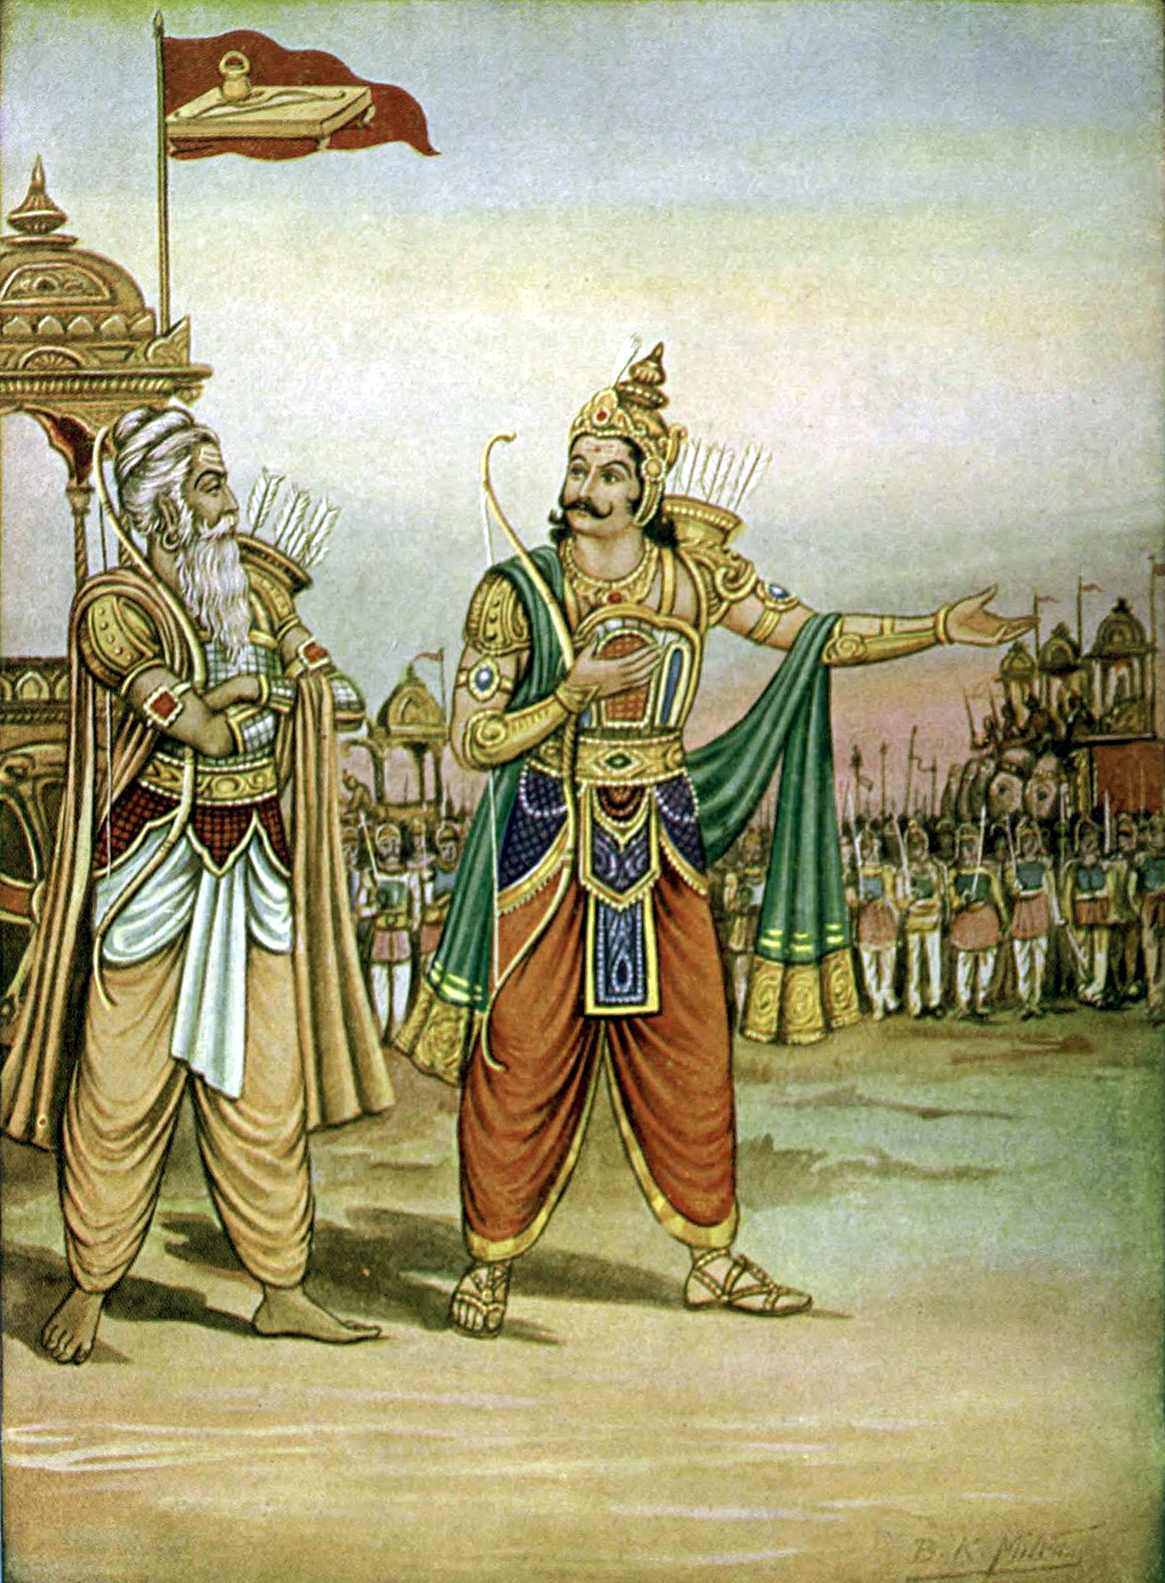 bhagvat geeta The bhagavad gita is one of the great religious classics of the world and the most translated next to the bible.